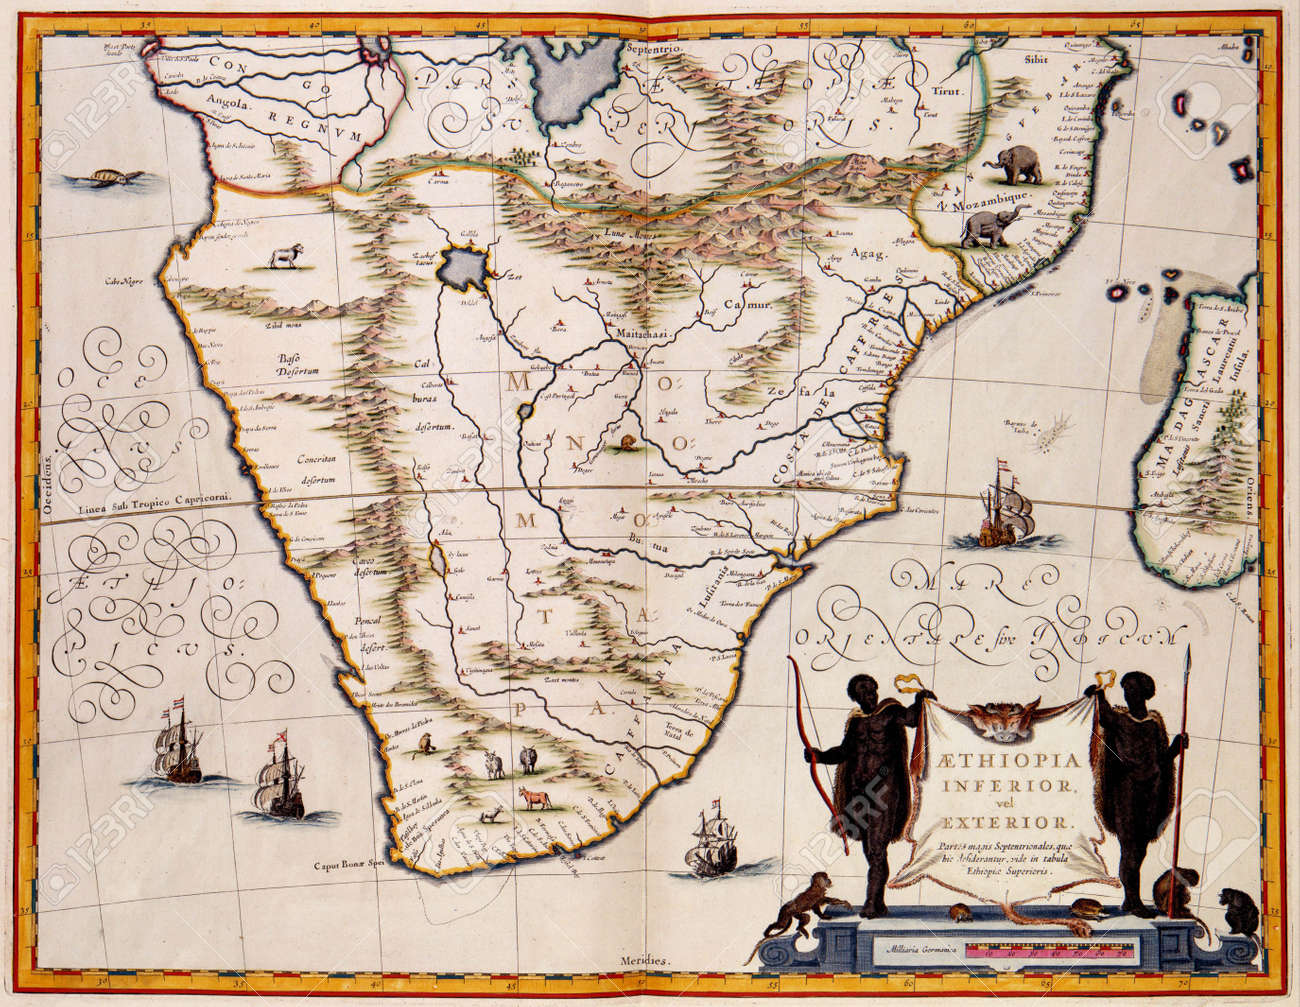 South Africa Old Map South Africa Old Map Stock Photo, Picture And Royalty Free Image